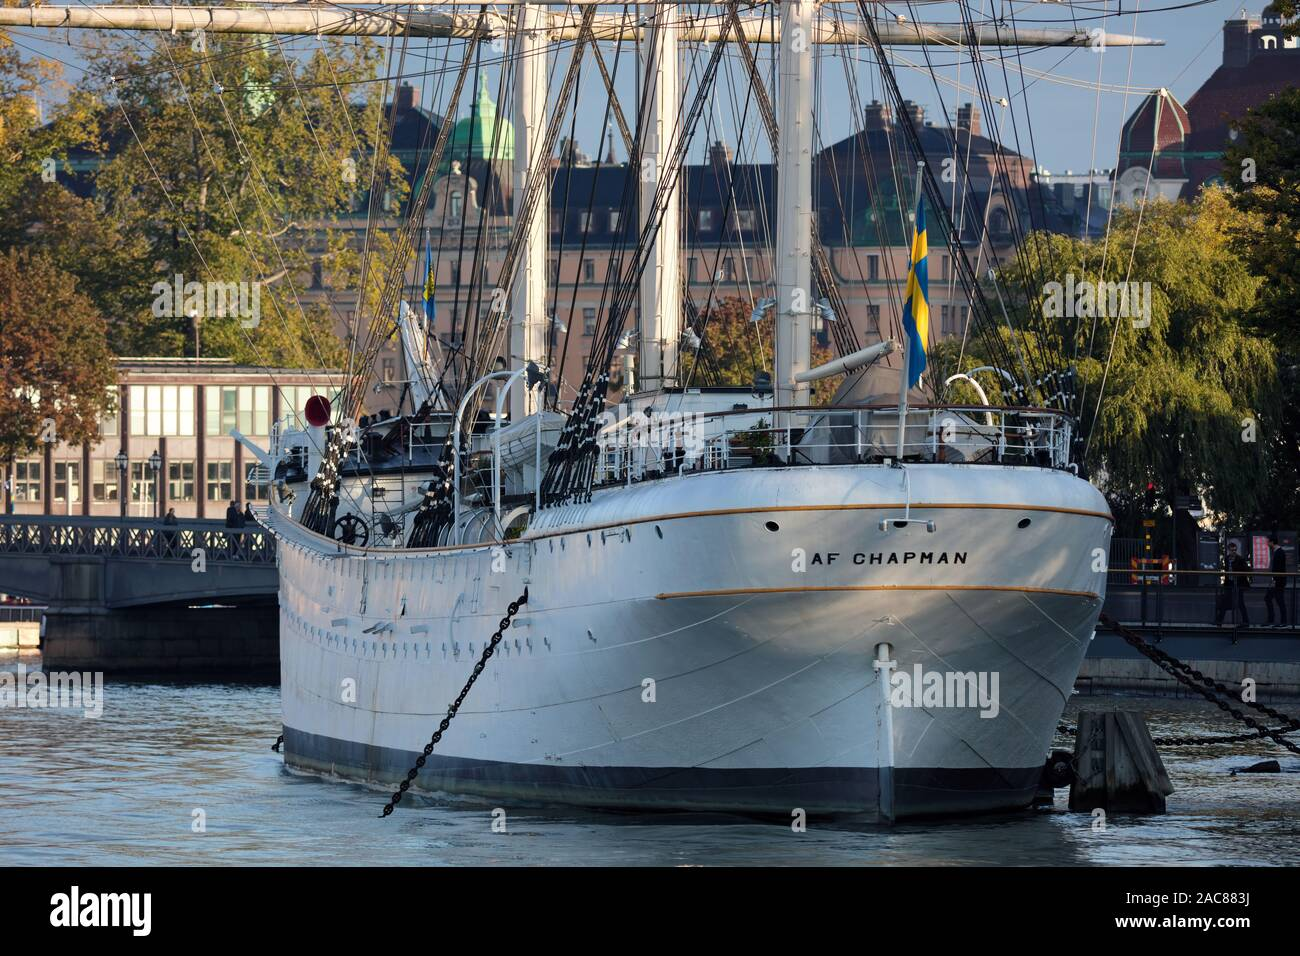 Old sailboat Af Chapman converted into a hostel next to Skeppsholmen, Stockholm, Sweden Stock Photo